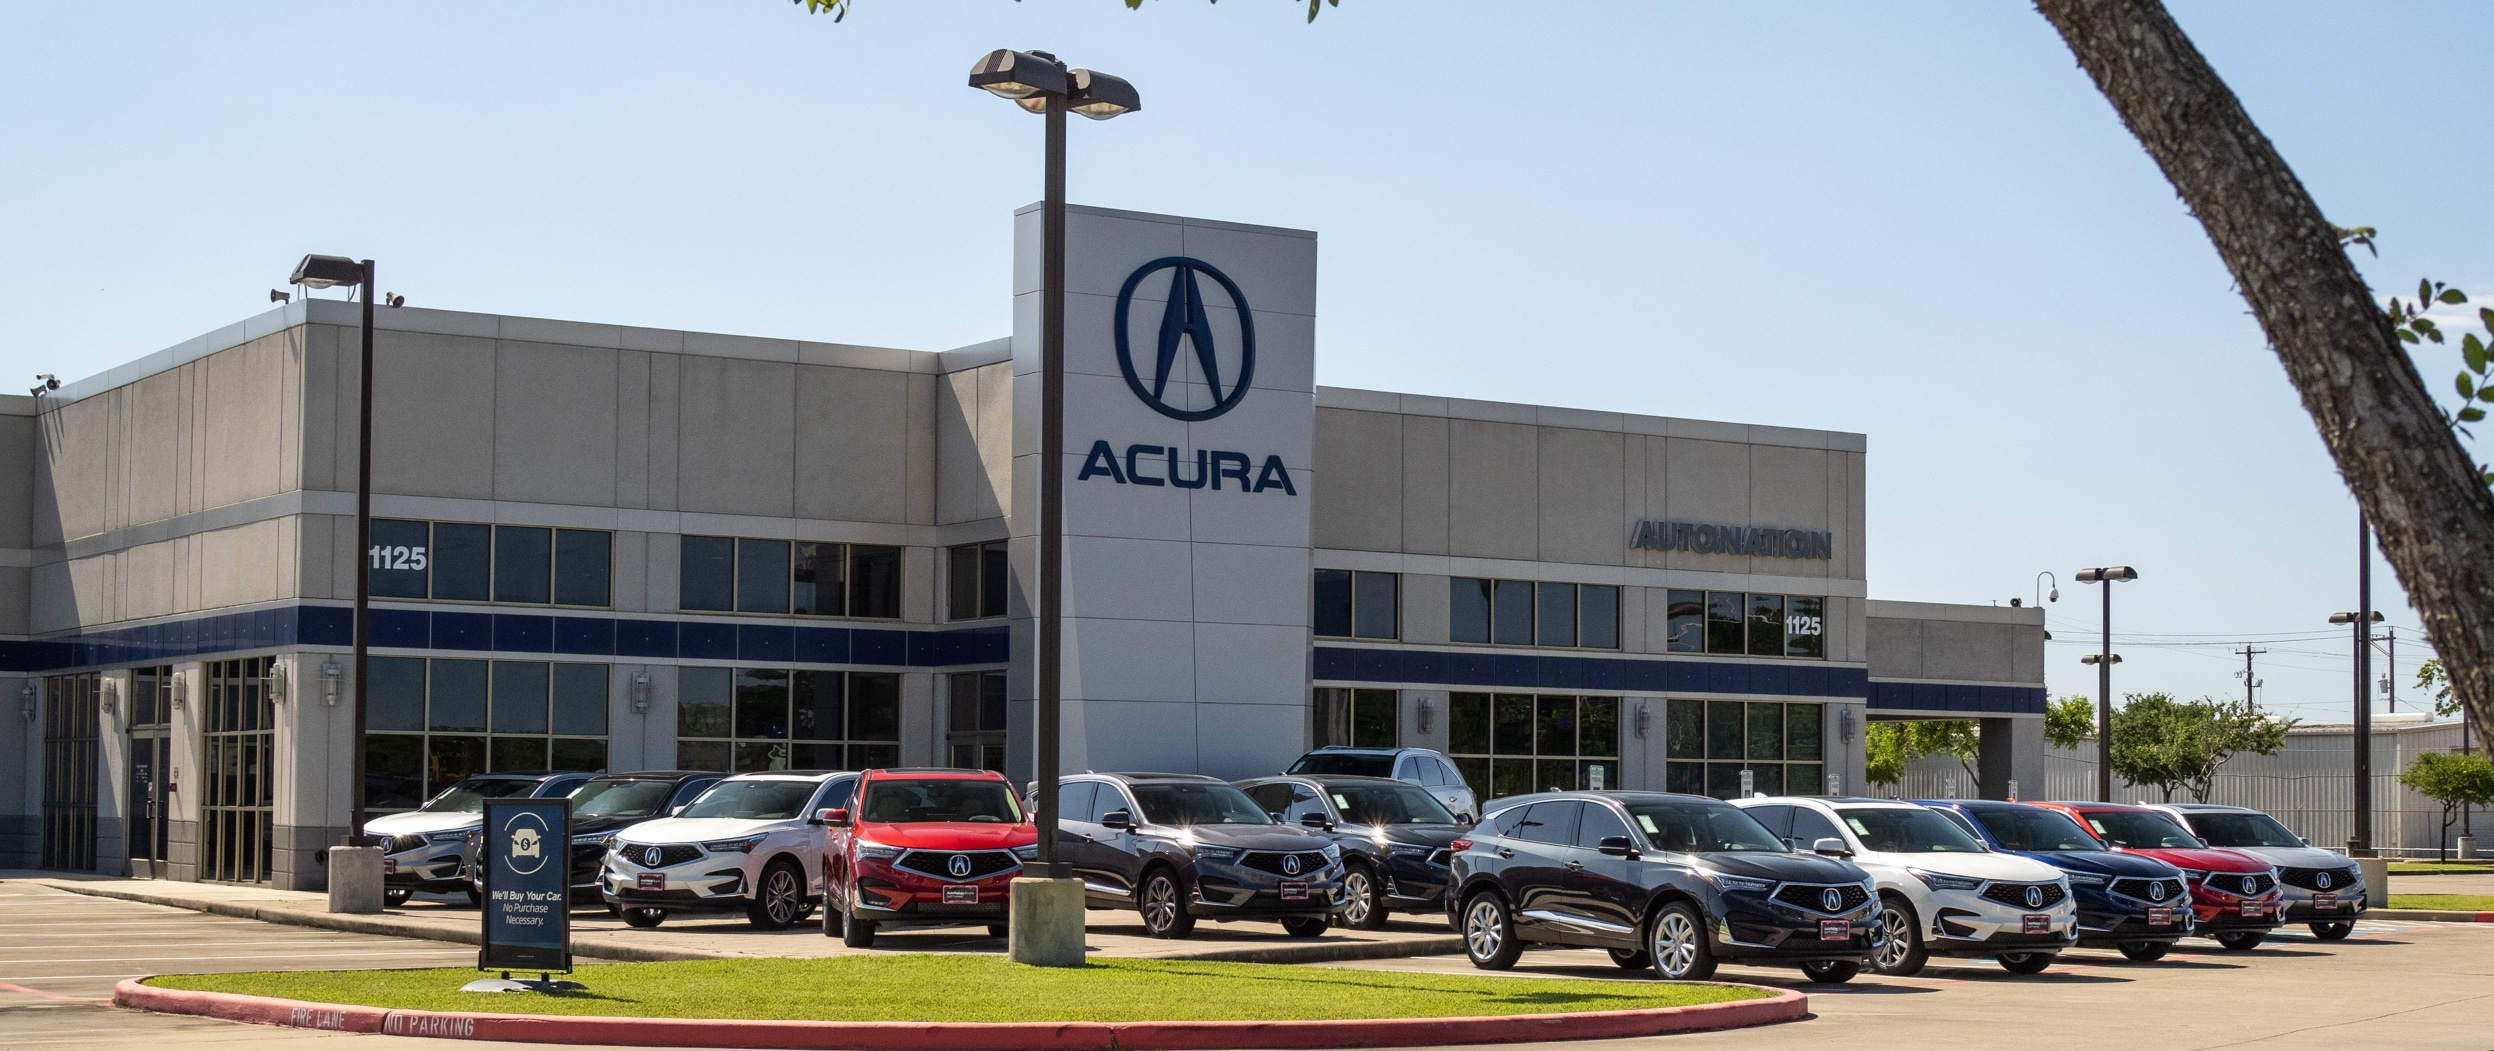 Exterior view of AutoNation Acura Gulf Freeway